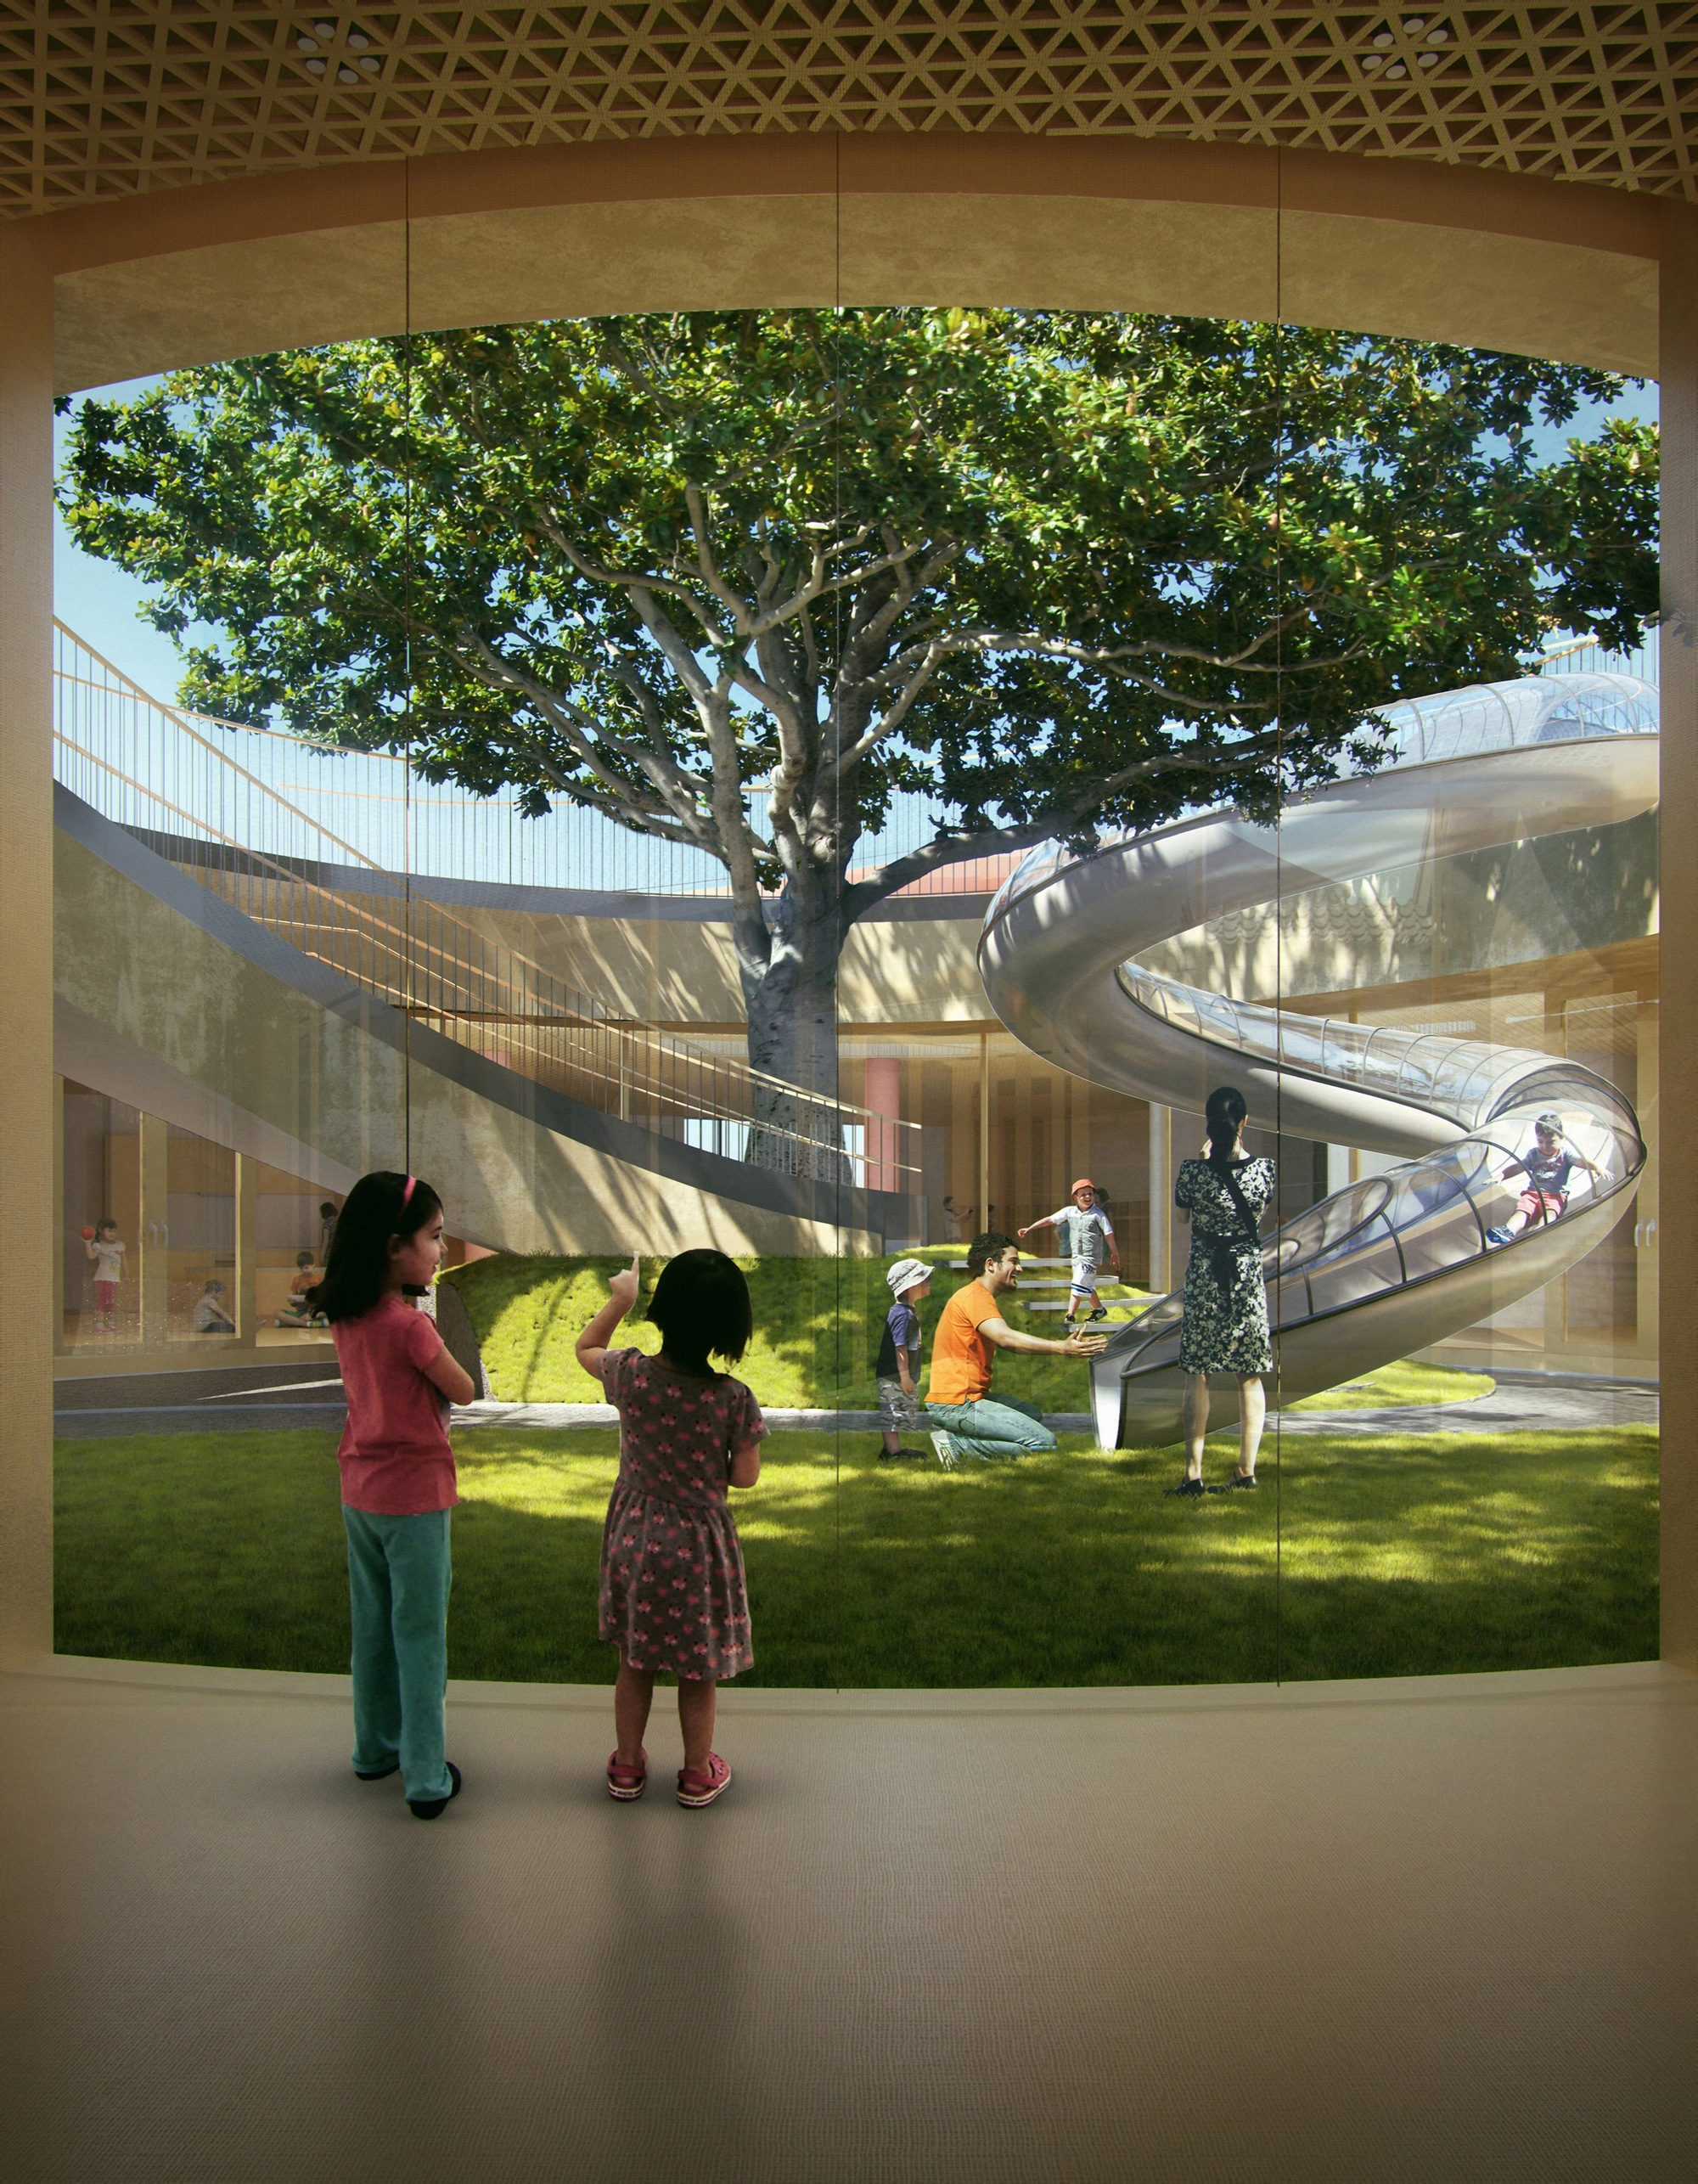 3_10_MAD_Courtyard_Kindergarten.jpg